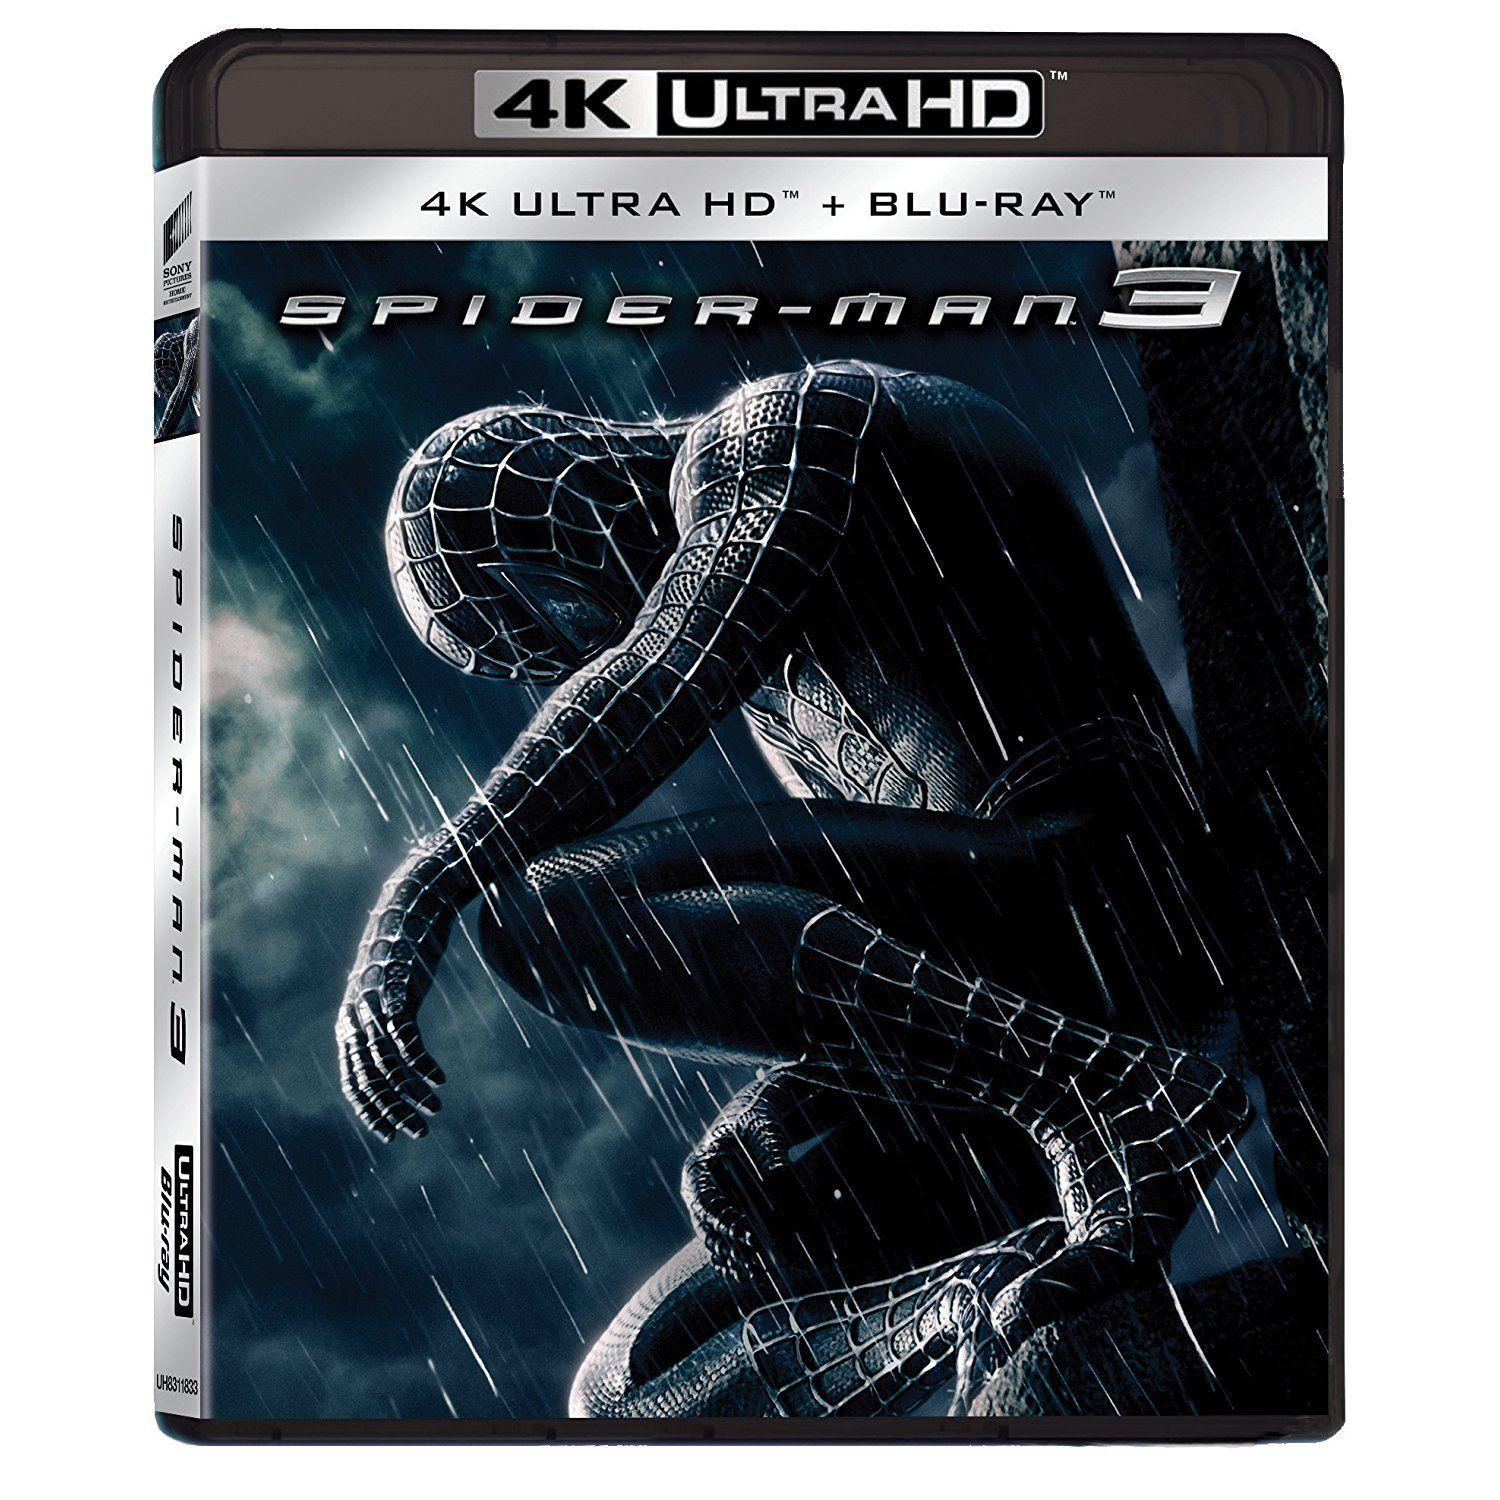 4K SPIDER-MAN 3 [&BLU RAY]